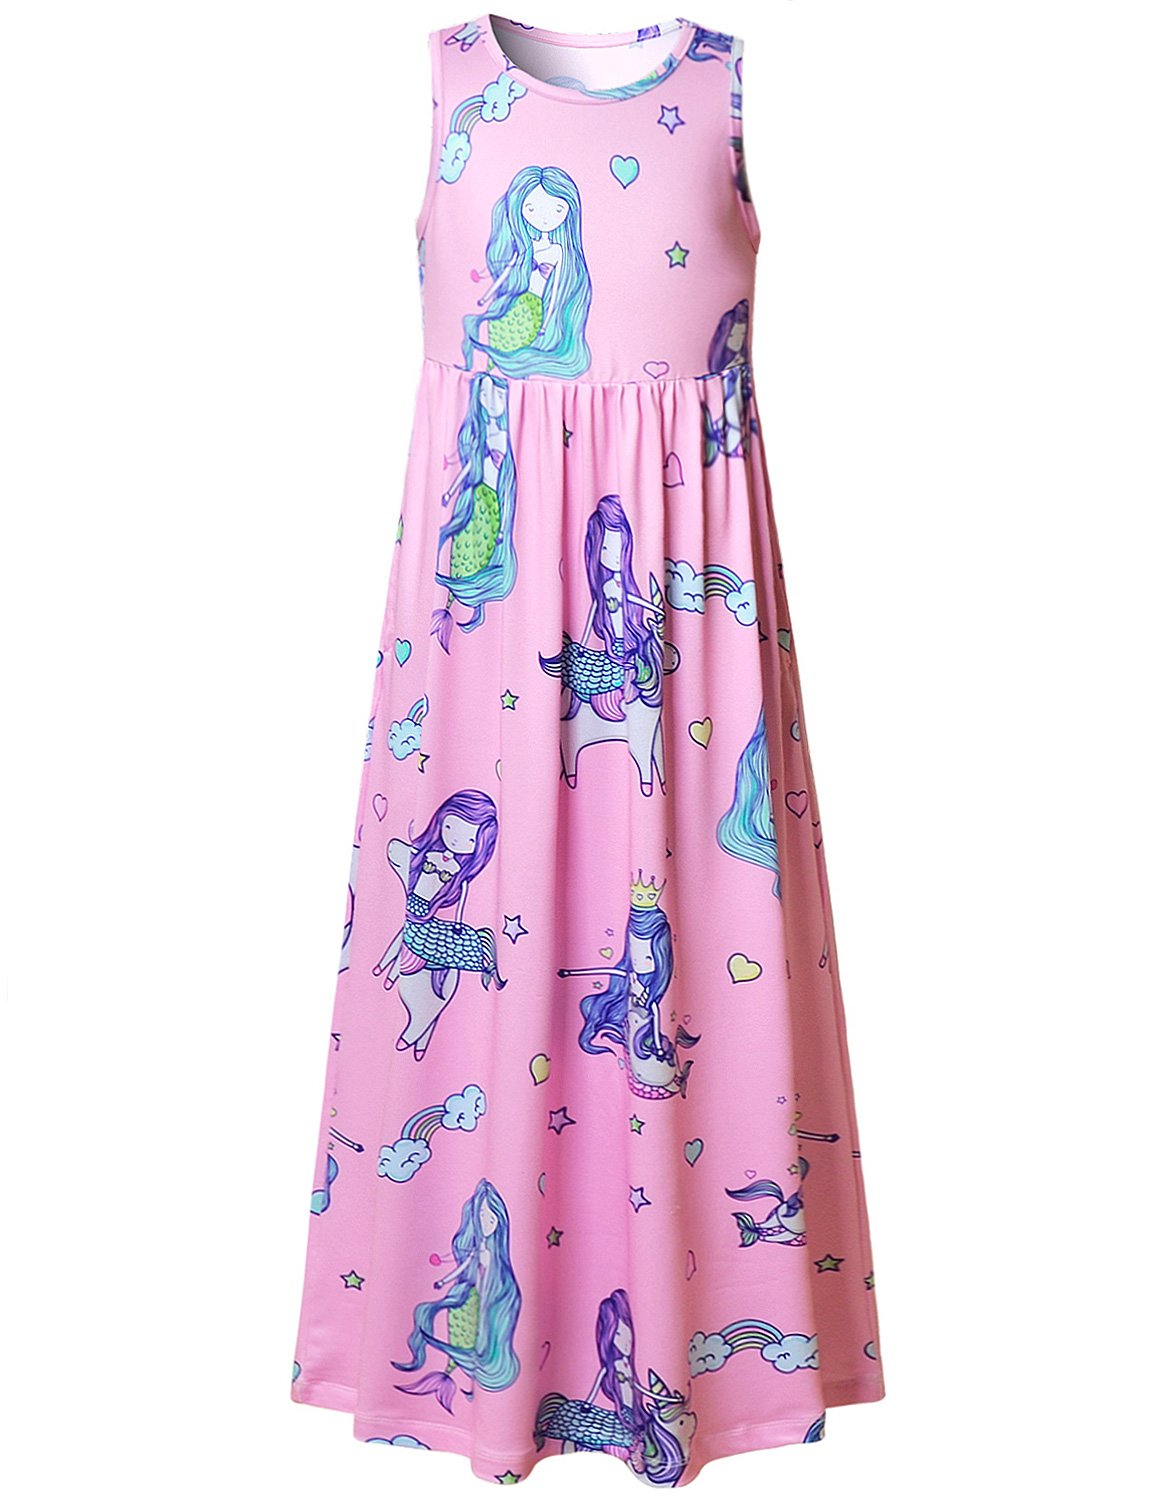 Cute Summer Unicorn Clothes Tank Party Dress for Girls 10-12